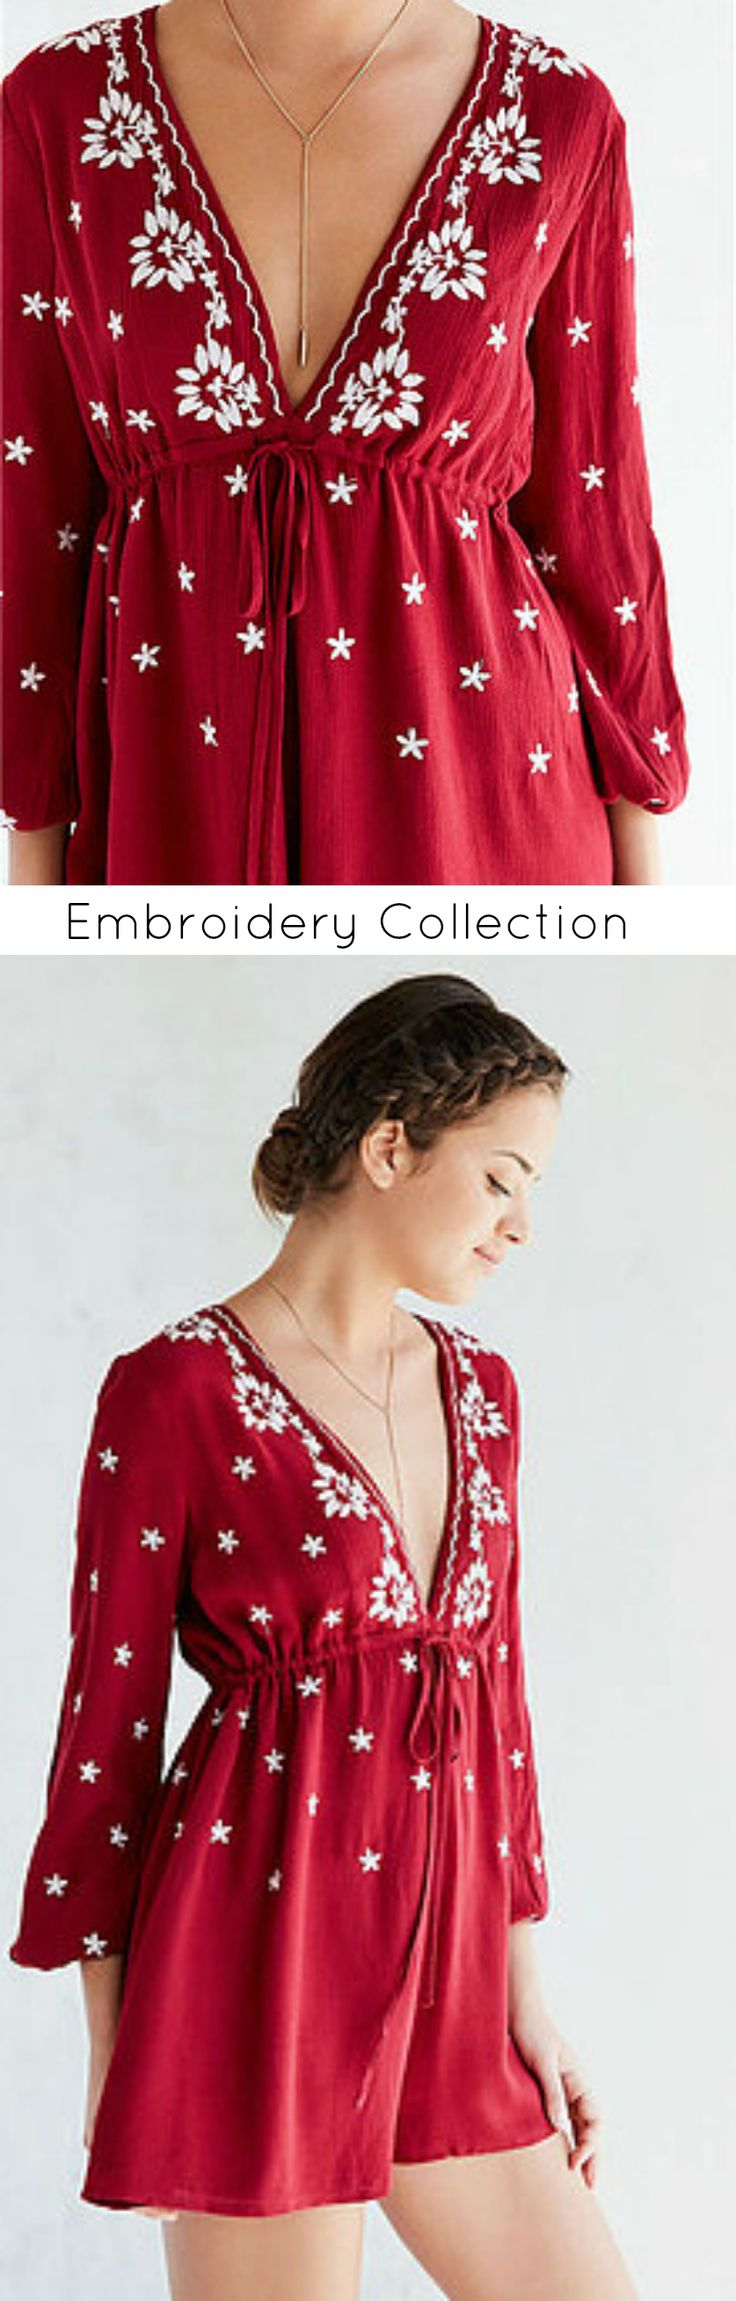 $39 - Little Red Romper is Now Available at Pasaboho ( an embroidered long sleeve exhibits brilliant design with beautiful embroidery patterns - Meredith McCook